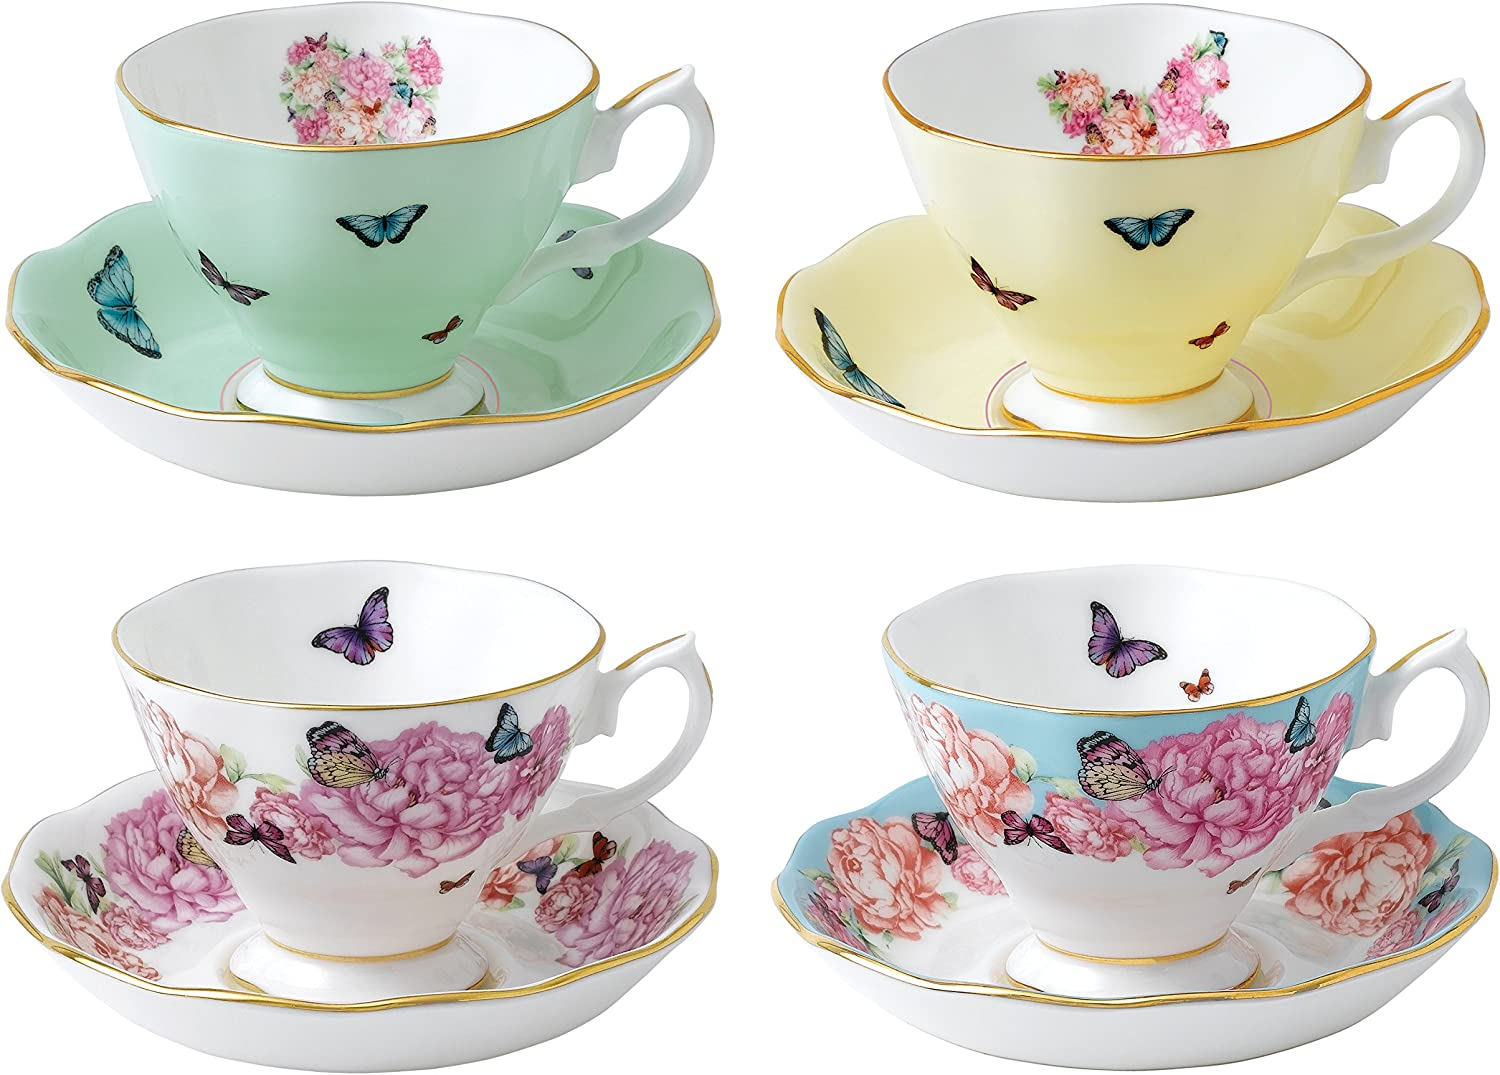 Amazon Com Royal Albert Miranda Kerr Teacups And Saucers Set Of 4 Multicolor Cup Saucer Sets